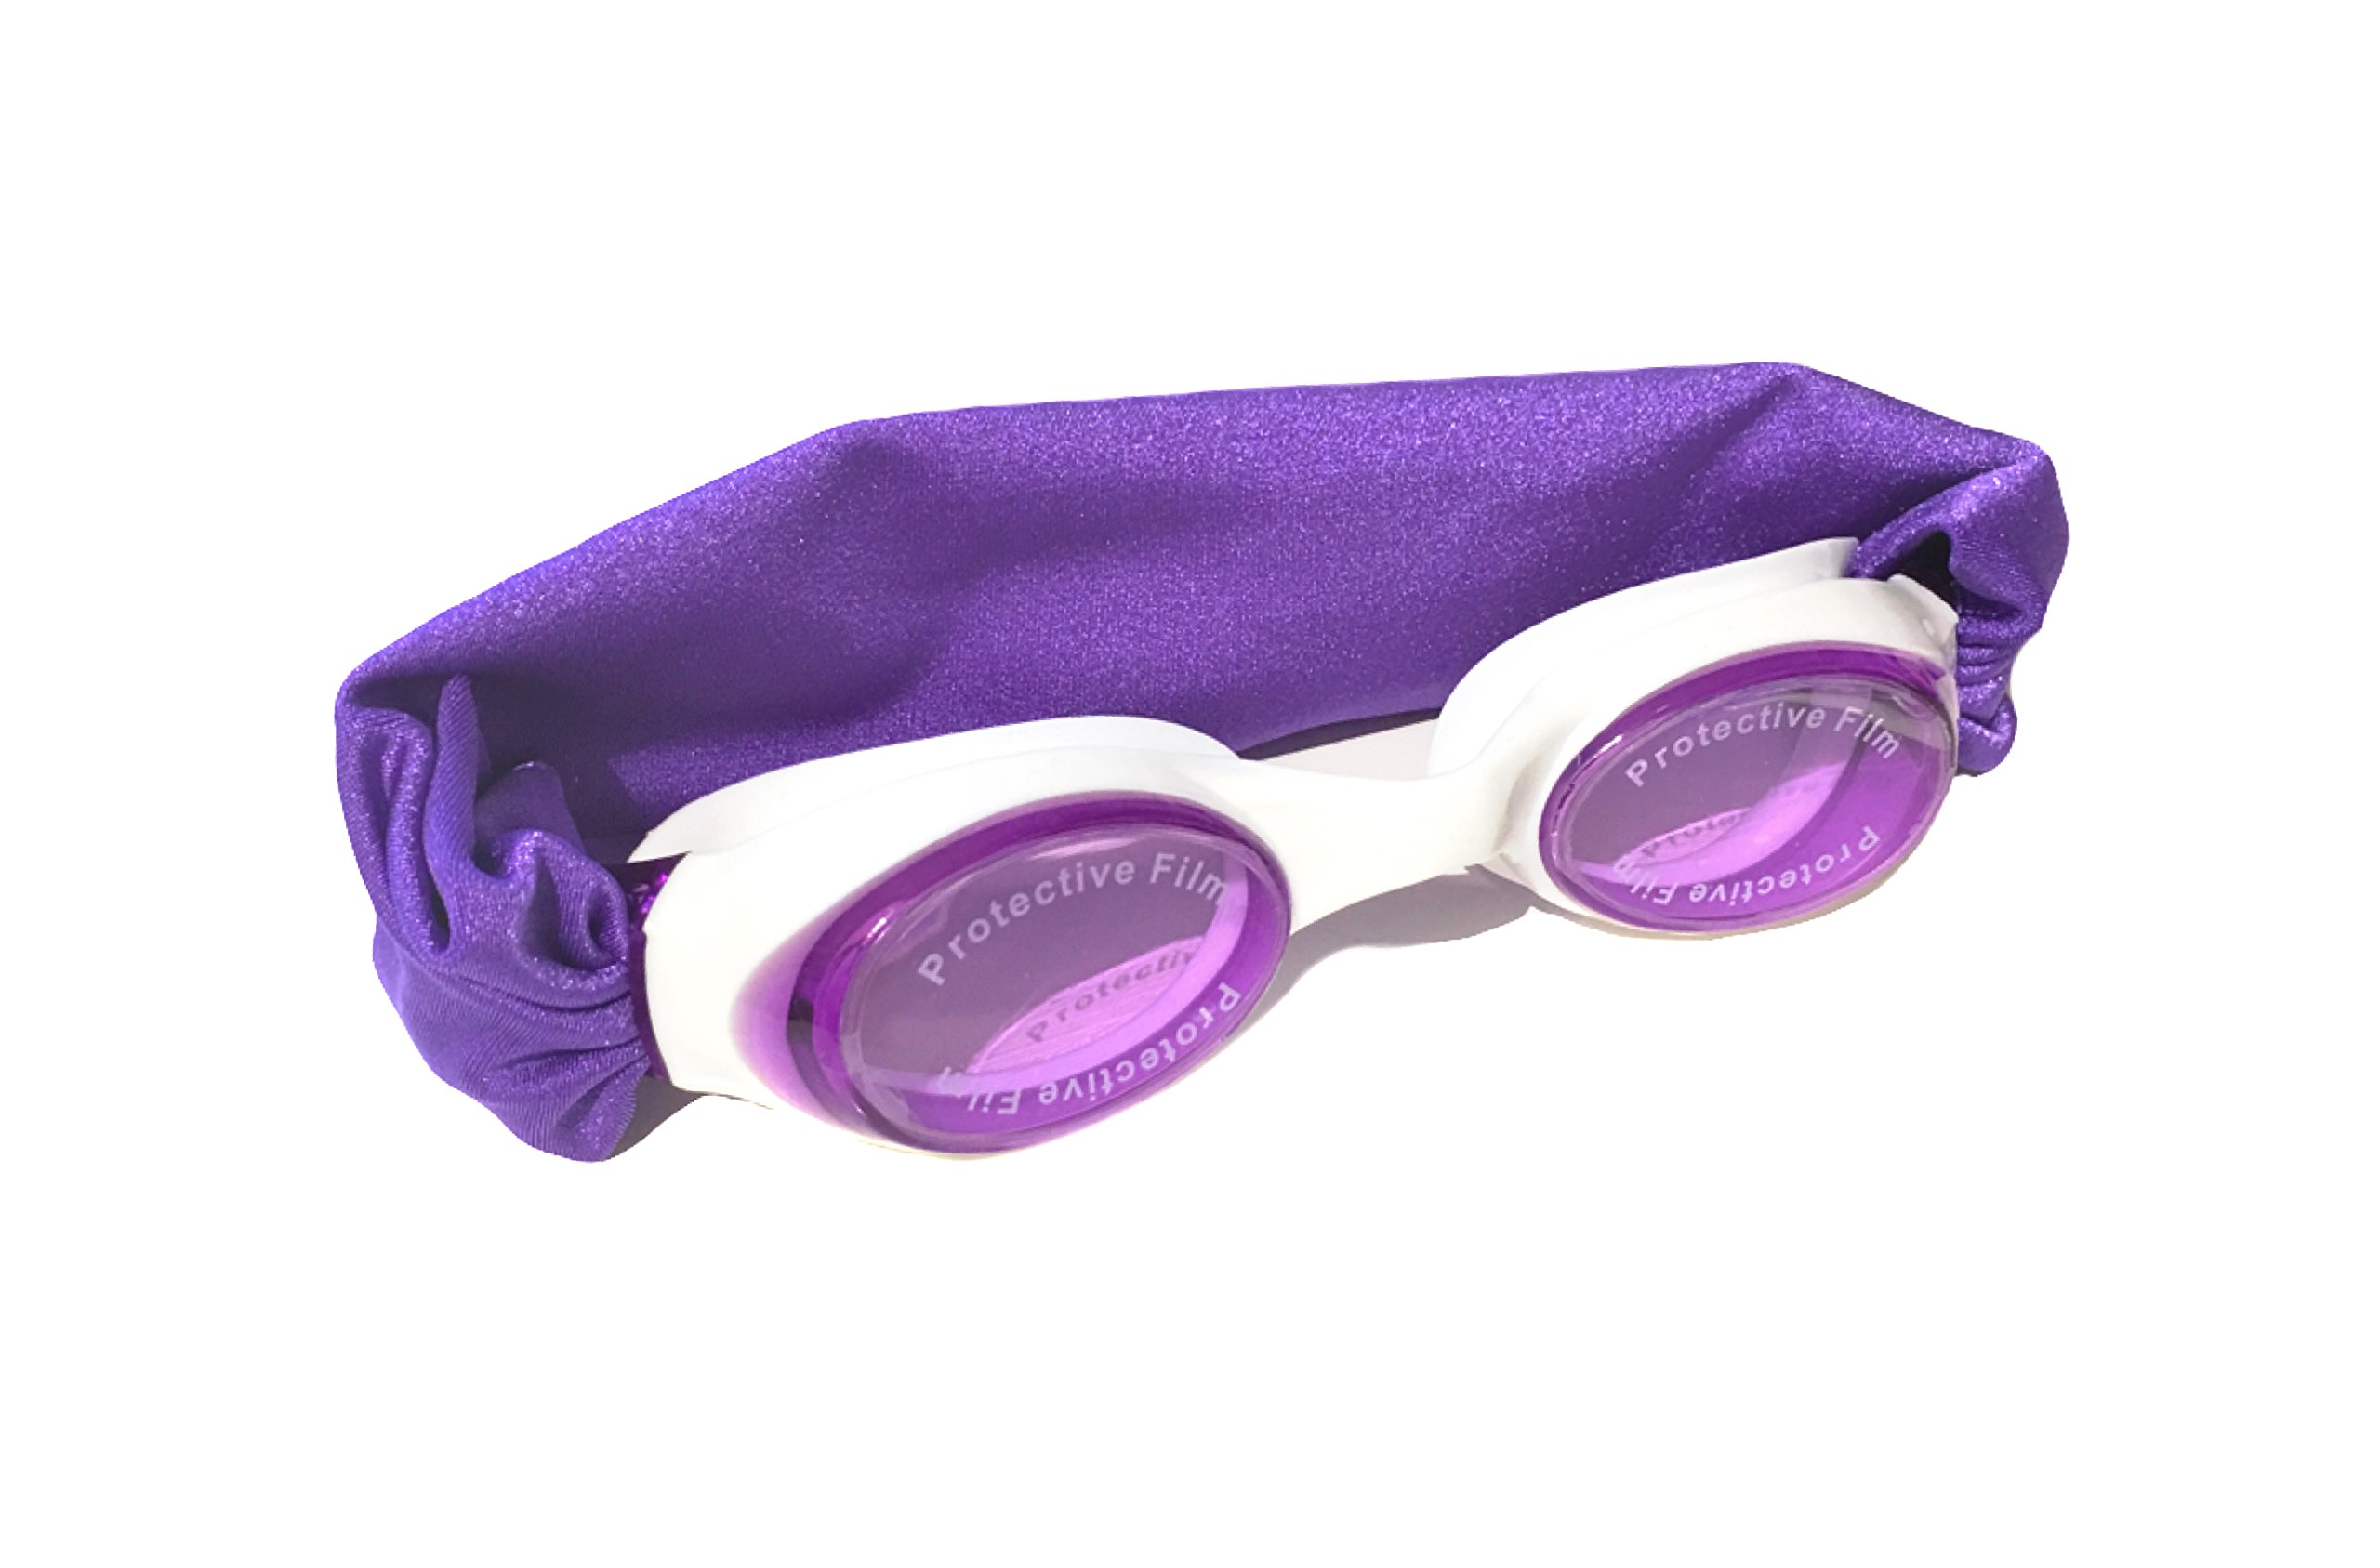 Splash IRIS Shimmer Swim Goggles - Fun Fashionable Comfortable - Fits Kids & Adults - Won't Pull Your Hair - Easy to Use - High Visibility Anti-Fog Lenses - Patent Pending